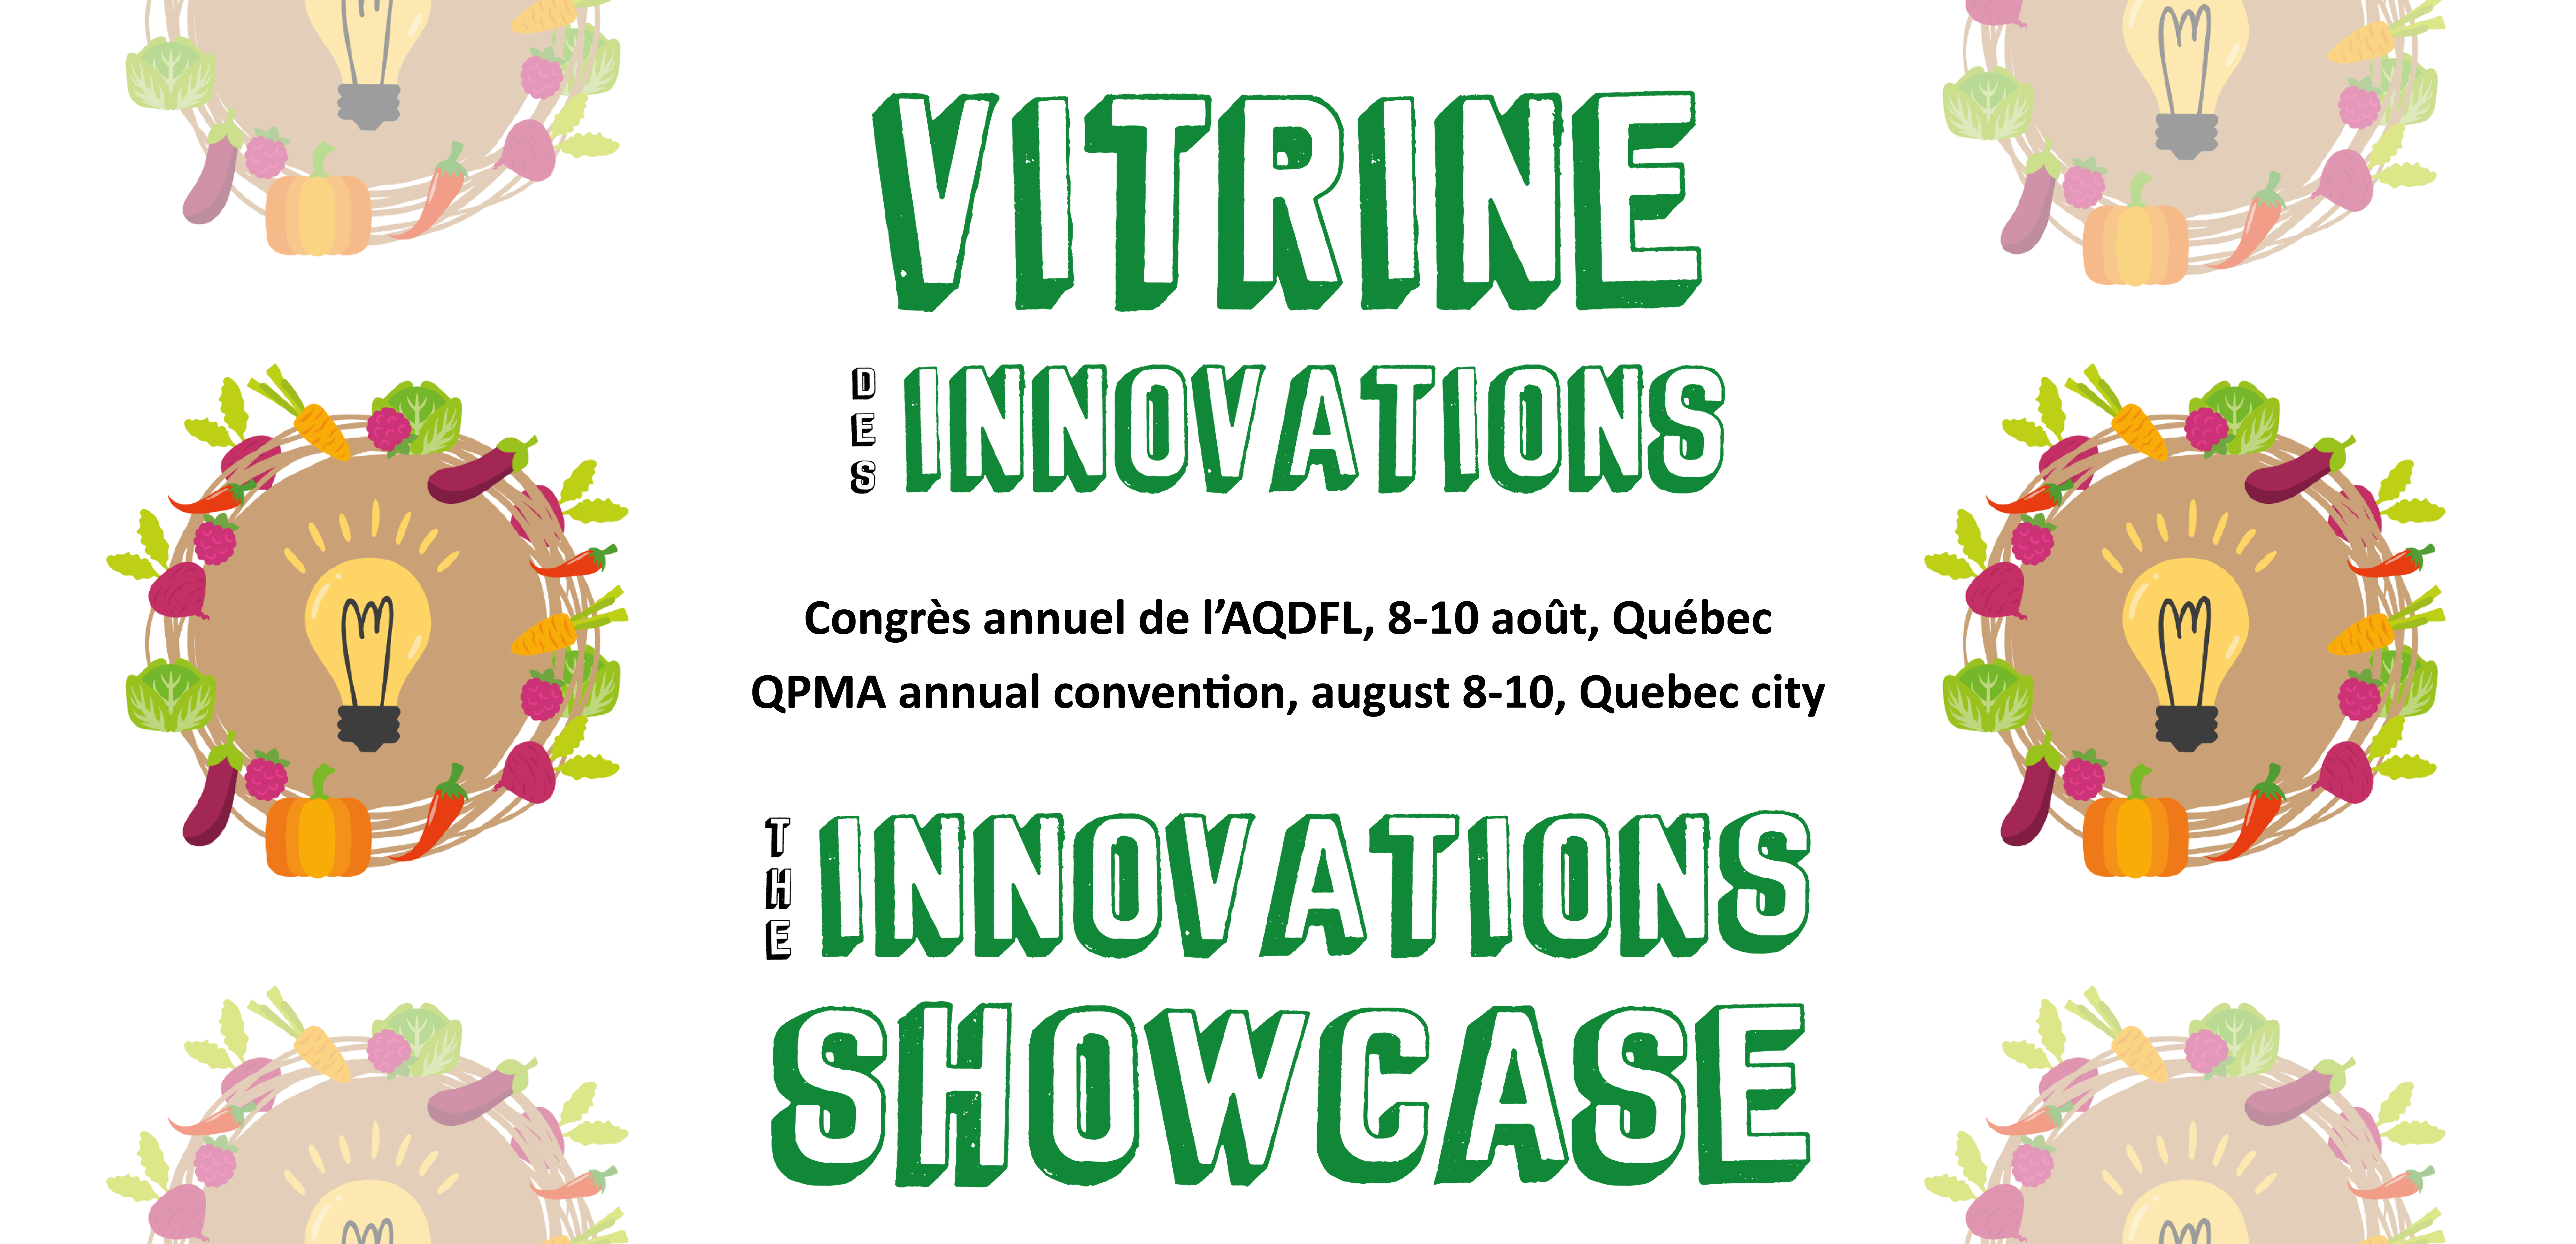 Have you innovated? Expose your innovation to the entire fruits and vegetables industry